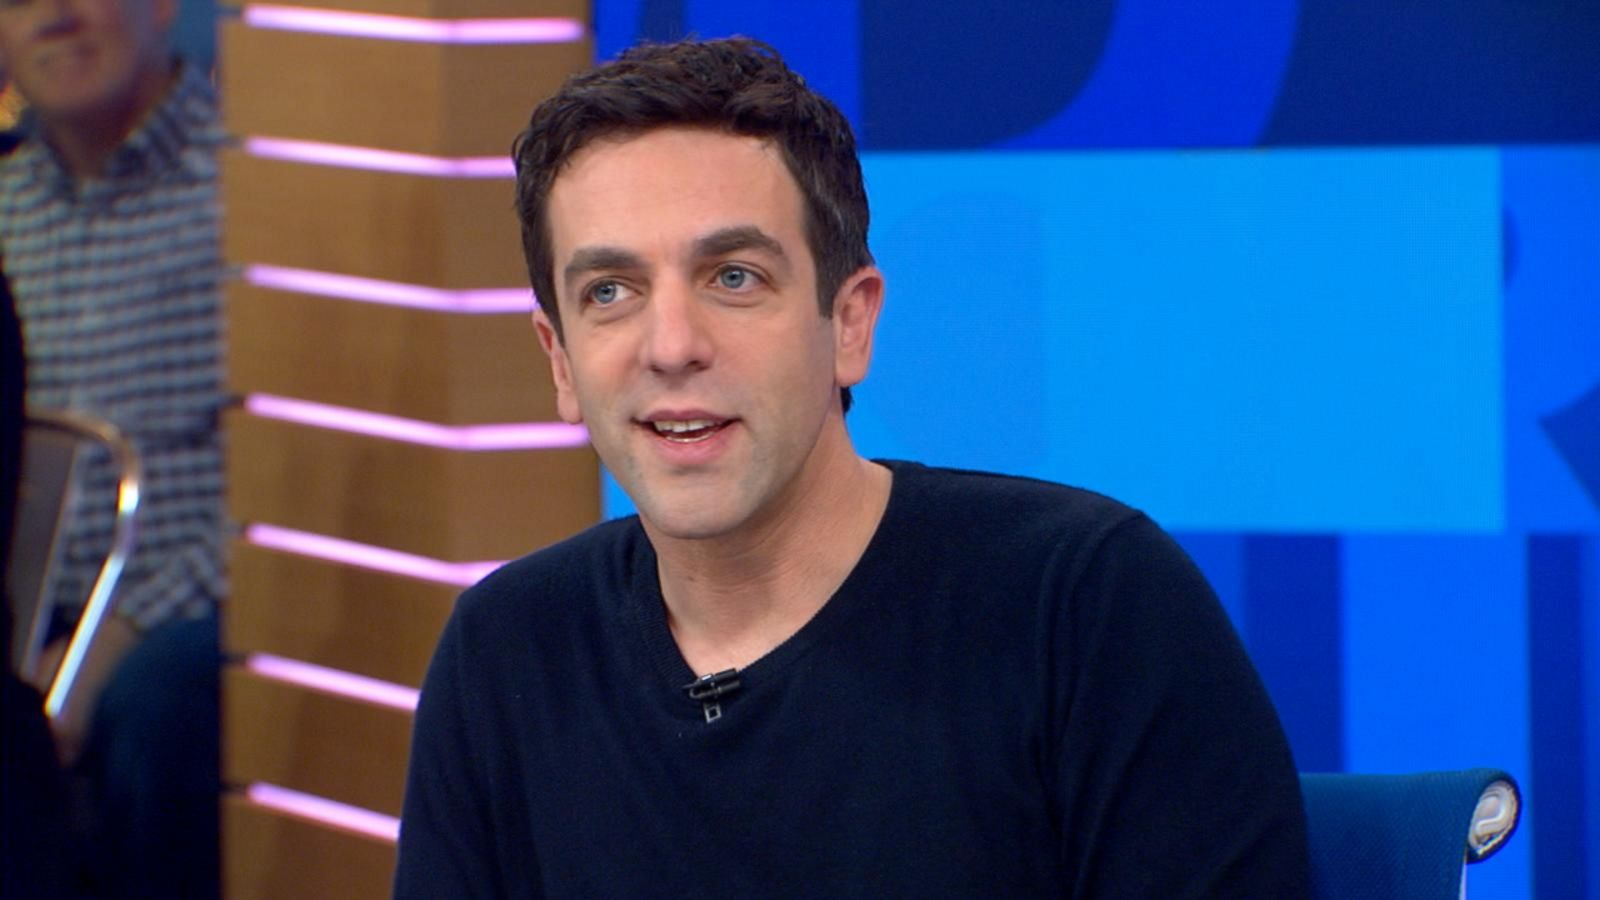 VIDEO: BJ Novak Talks About His New Film About McDonalds The Founder